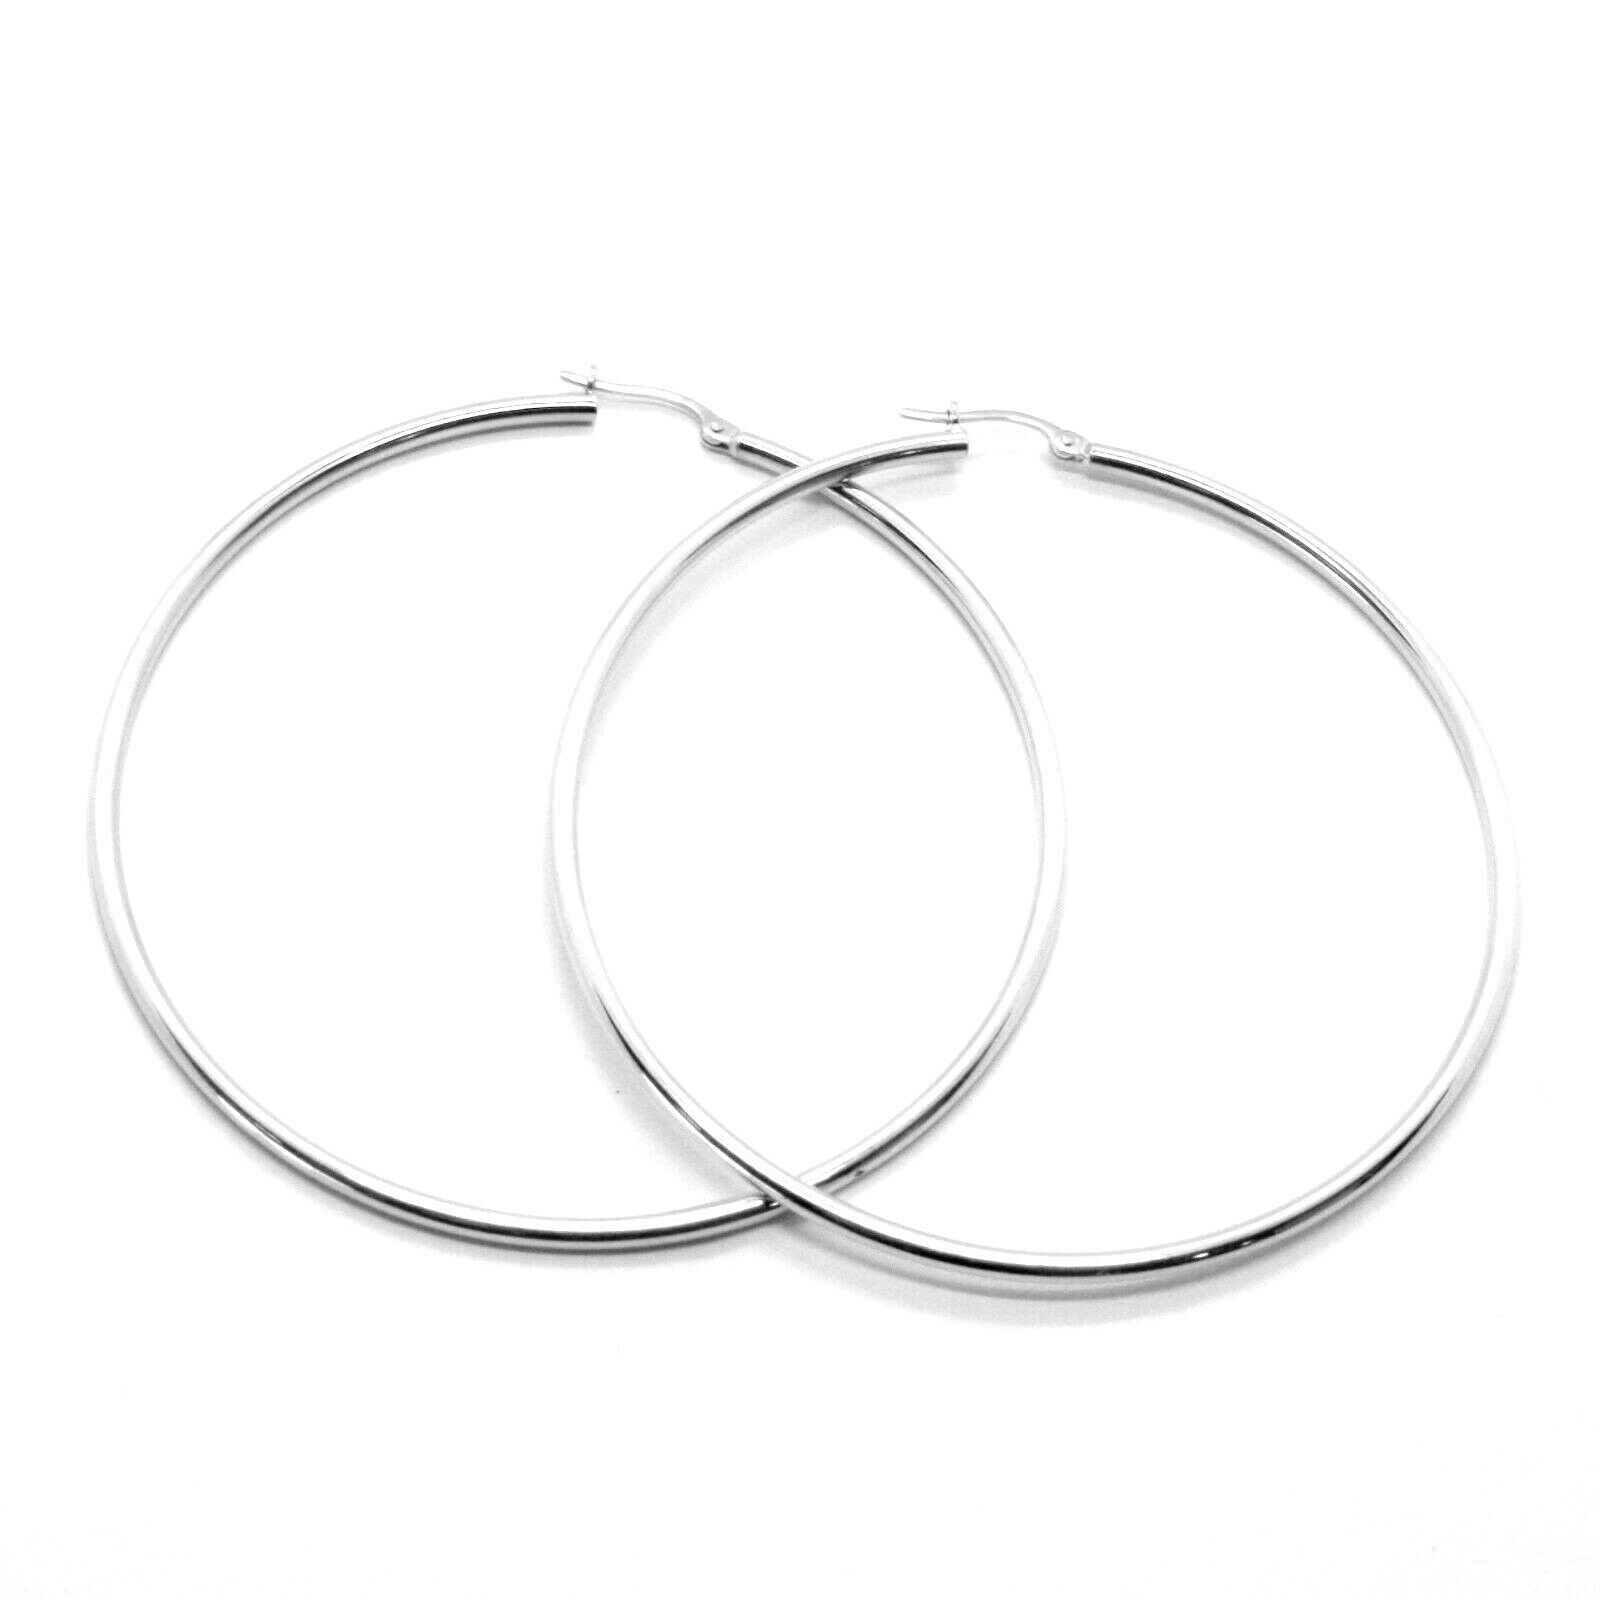 18K WHITE GOLD ROUND CIRCLE EARRINGS DIAMETER 50 MM, WIDTH 2 MM, MADE IN ITALY